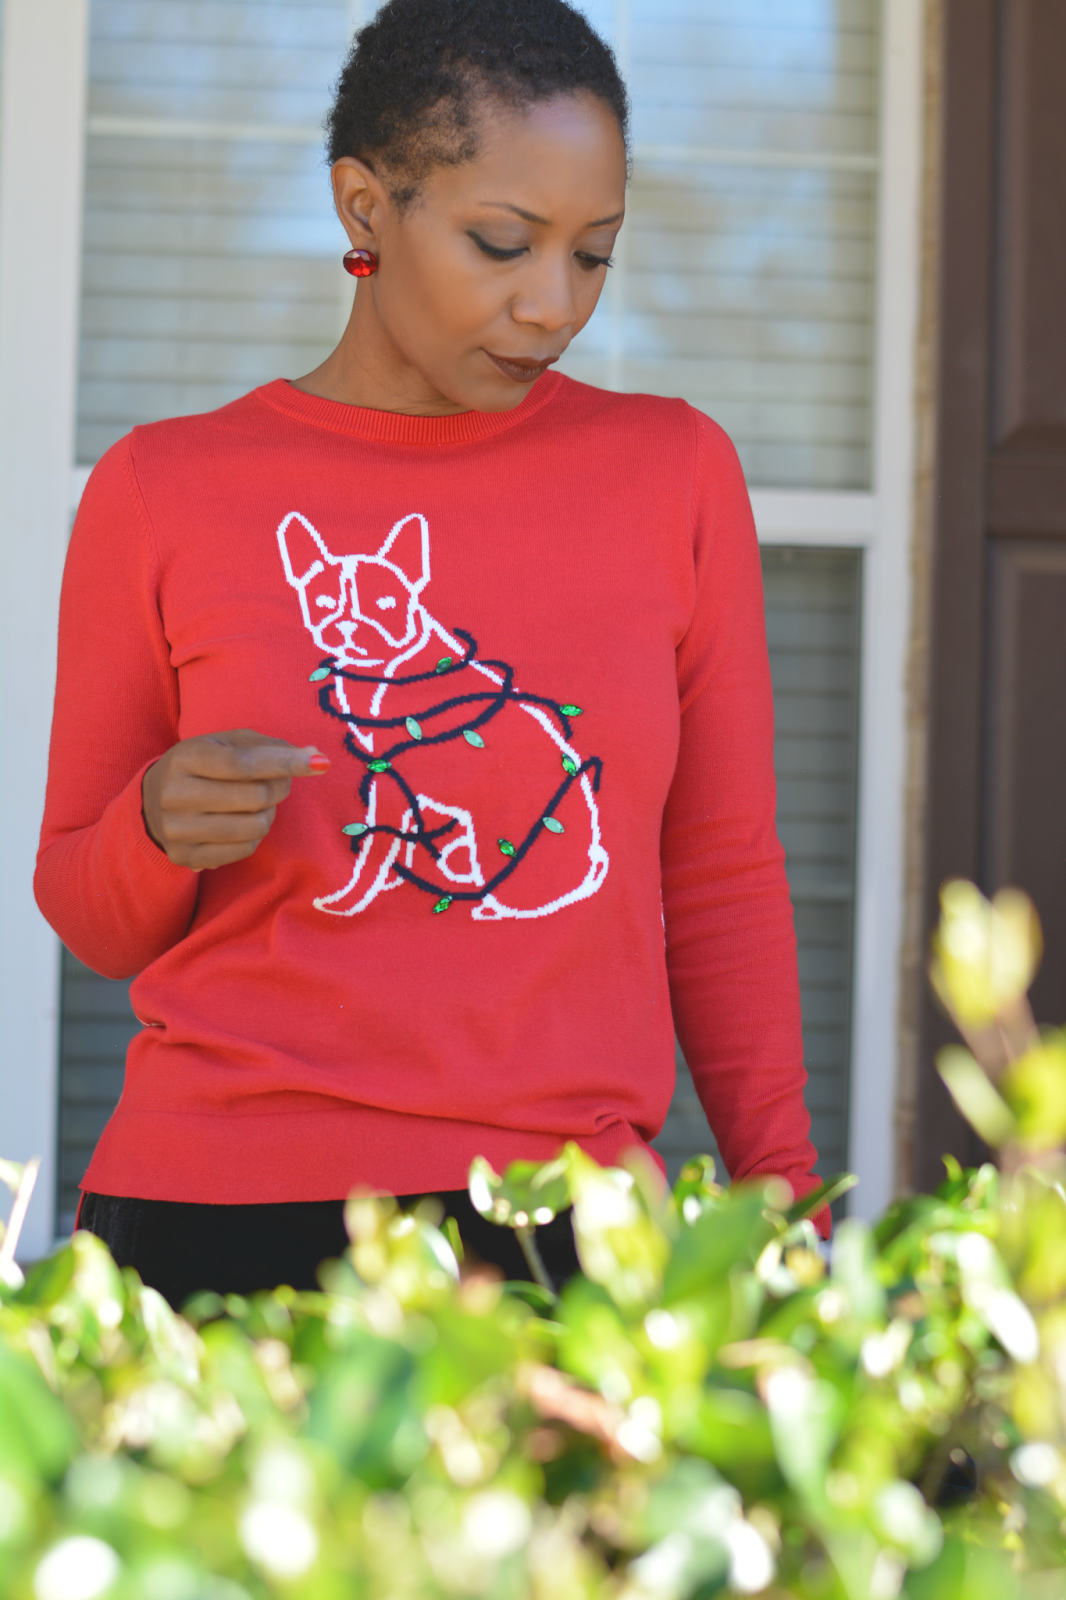 2be2e0a3db8c6 crown & ivy clothing exclusively at belk department stores, #crownandivy  ad, velvet pants, ugly christmas sweater, cute christmas sweater, ...